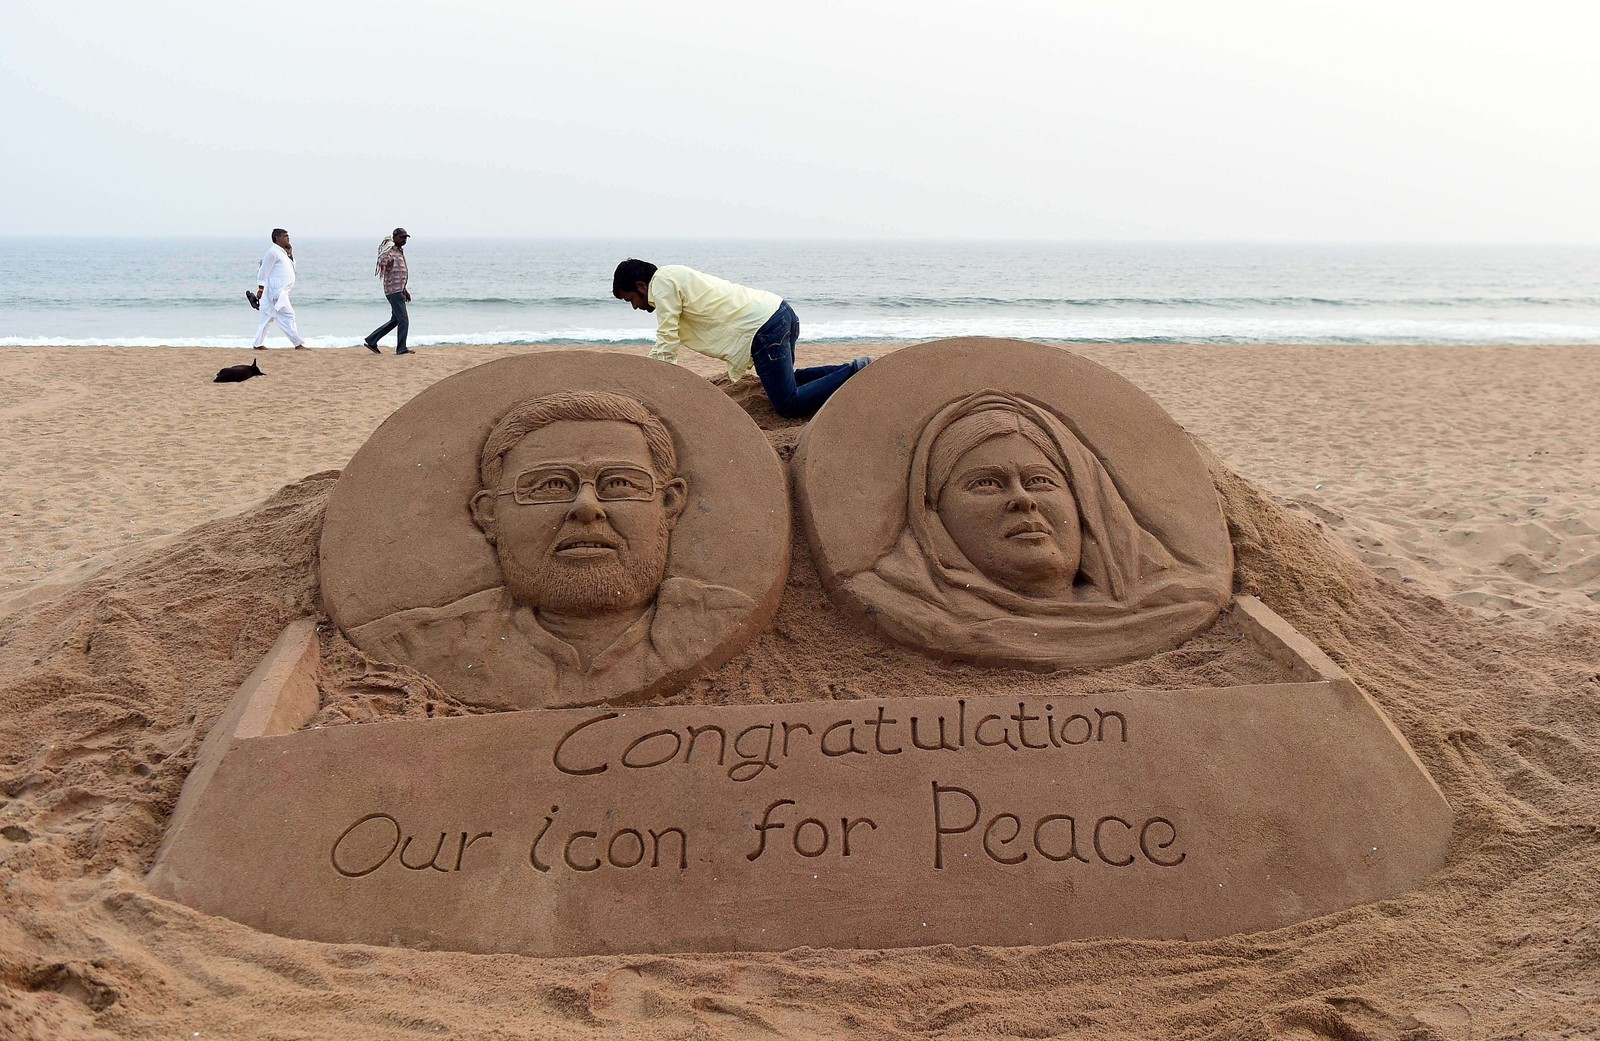 INDIA: Indian sand sculptor artist Sudarshan Patnaik gives the final touches to a sand sculpture showing joint Nobel prize winners, Indian Kailash Satyarthi (L) and Pakistan Malala Yousufzai on the beach in Puri, on December 10, 2014. Pakistani schoolgirl Malala Yousafzai received the Nobel Peace Prize on December 10 in Oslo, Norway as the youngest ever laureate, sharing her award with Indian child rights campaigner Kailash Satyarthi.